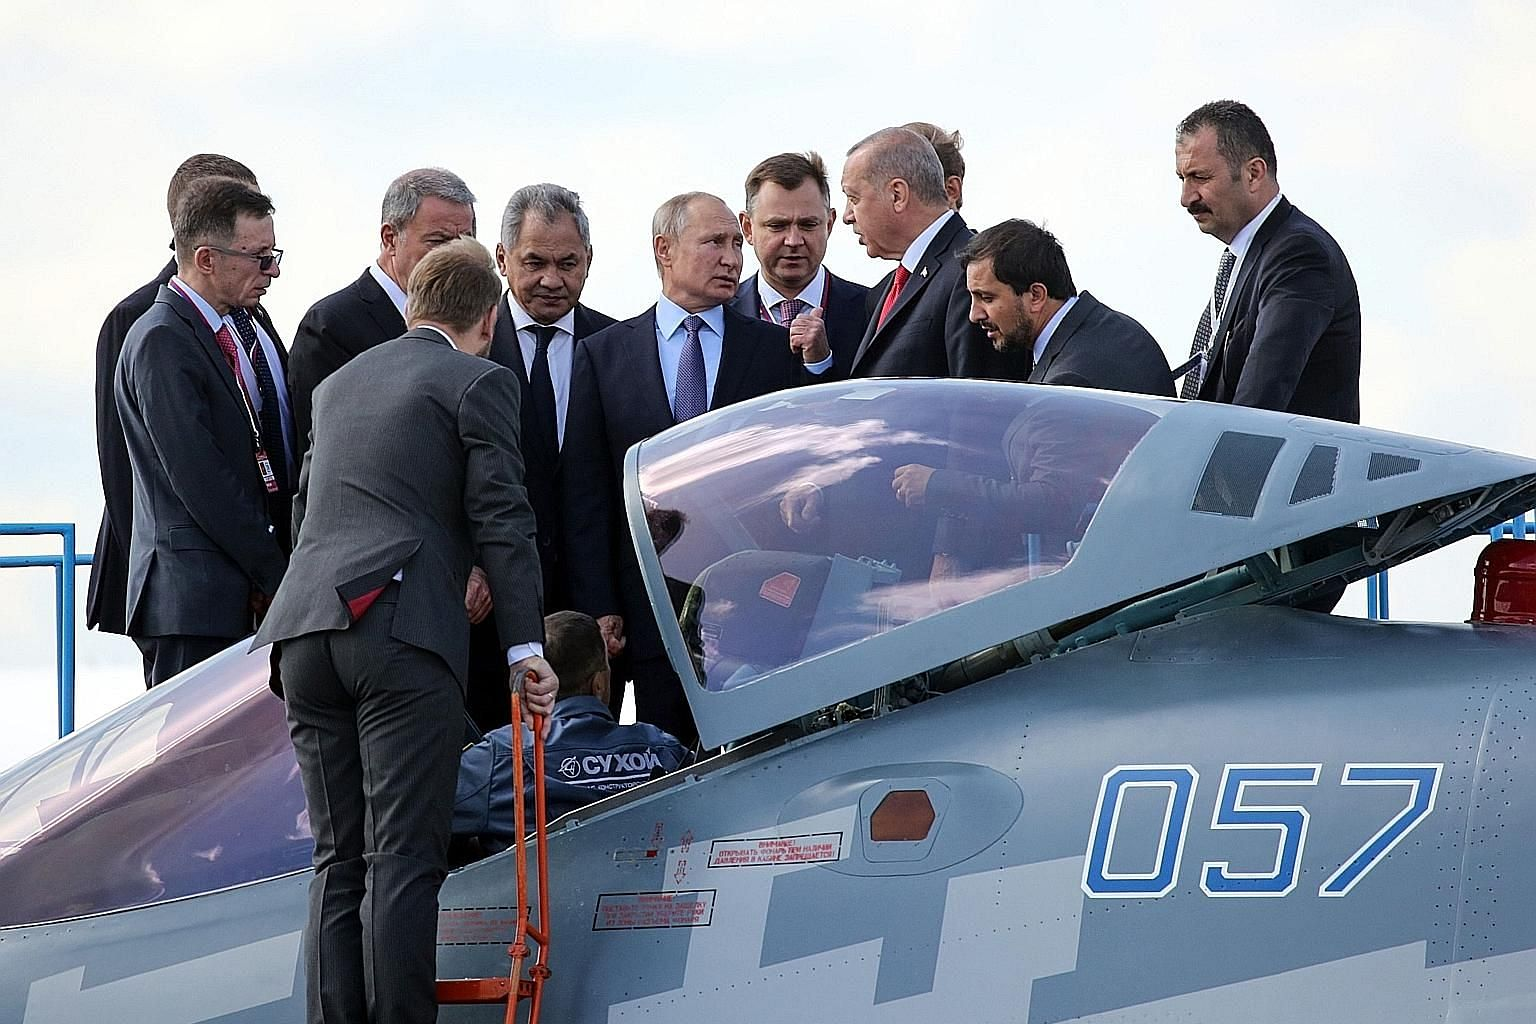 Russian President Vladimir Putin and his Turkish counterpart Recep Tayyip Erdogan inspecting a Sukhoi Su-57 stealth fighter jet at the MAKS-2019 international airshow, a showcase for Russian military technology, in the Moscow region on Tuesday.